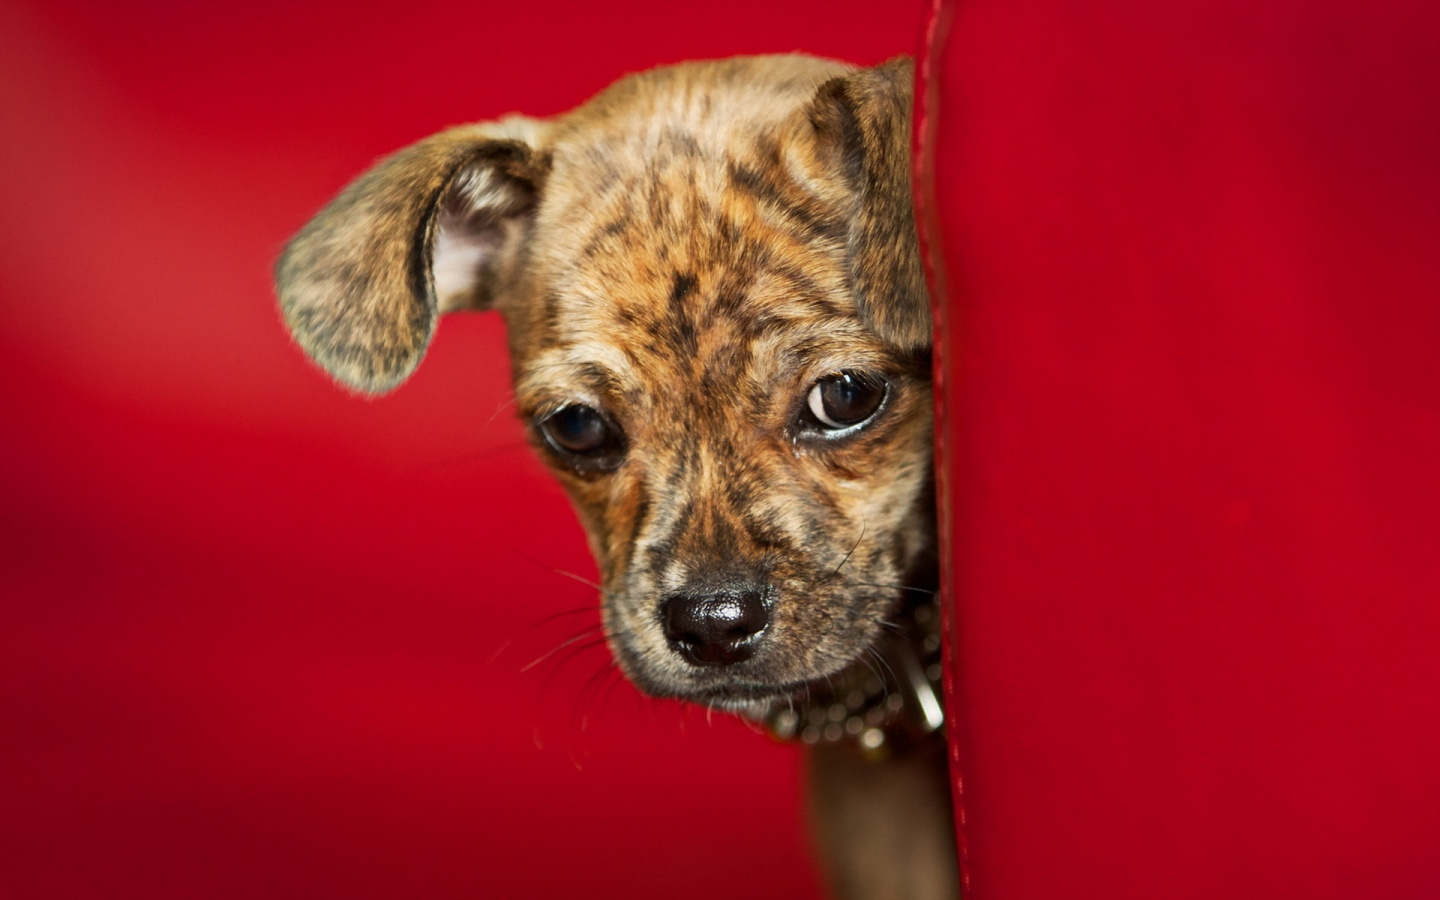 Dog View Red Background